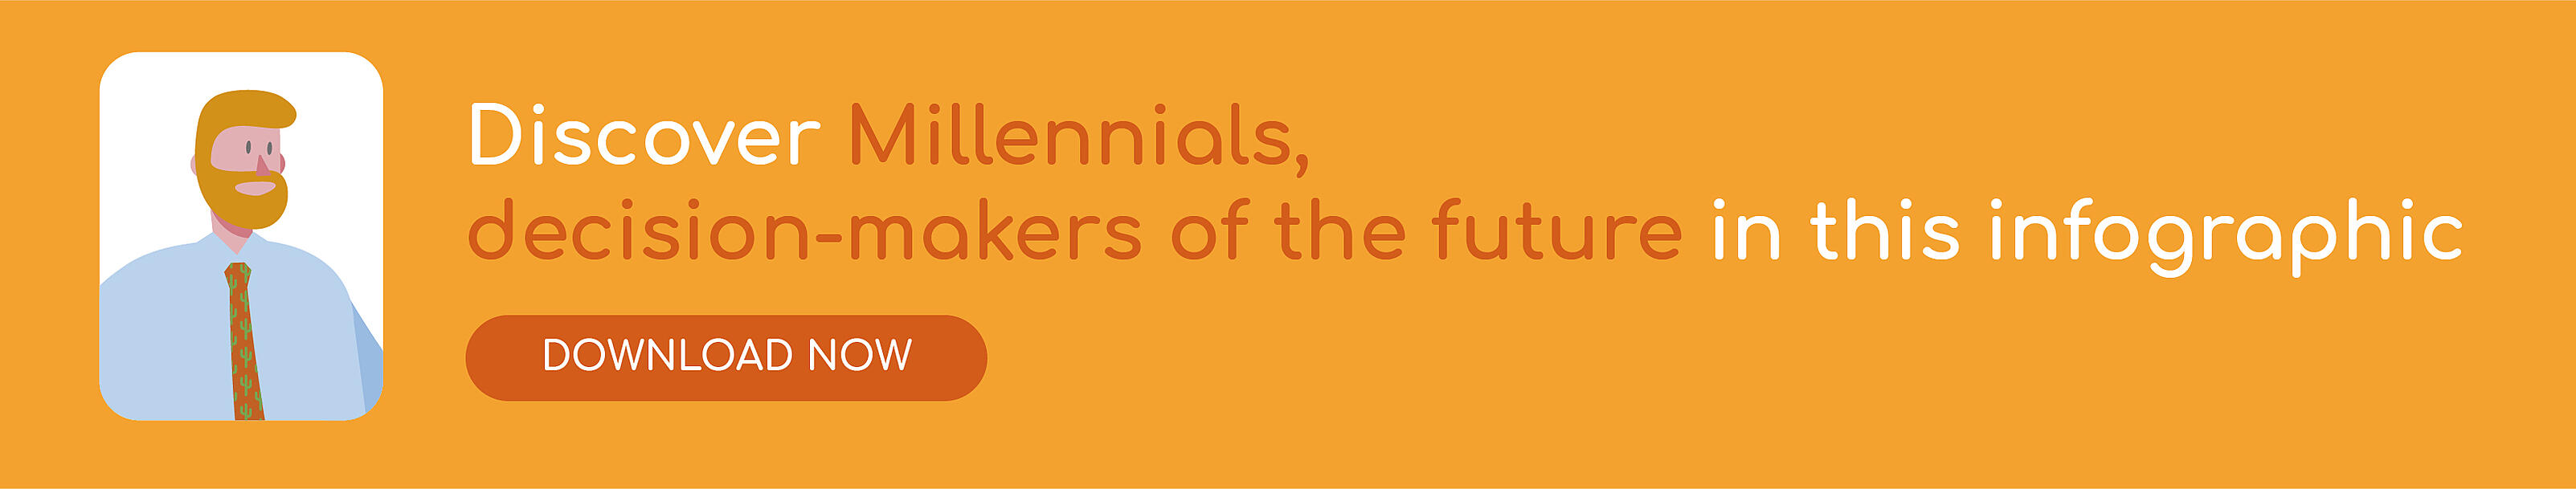 Infographic millennials decision-makers of the future